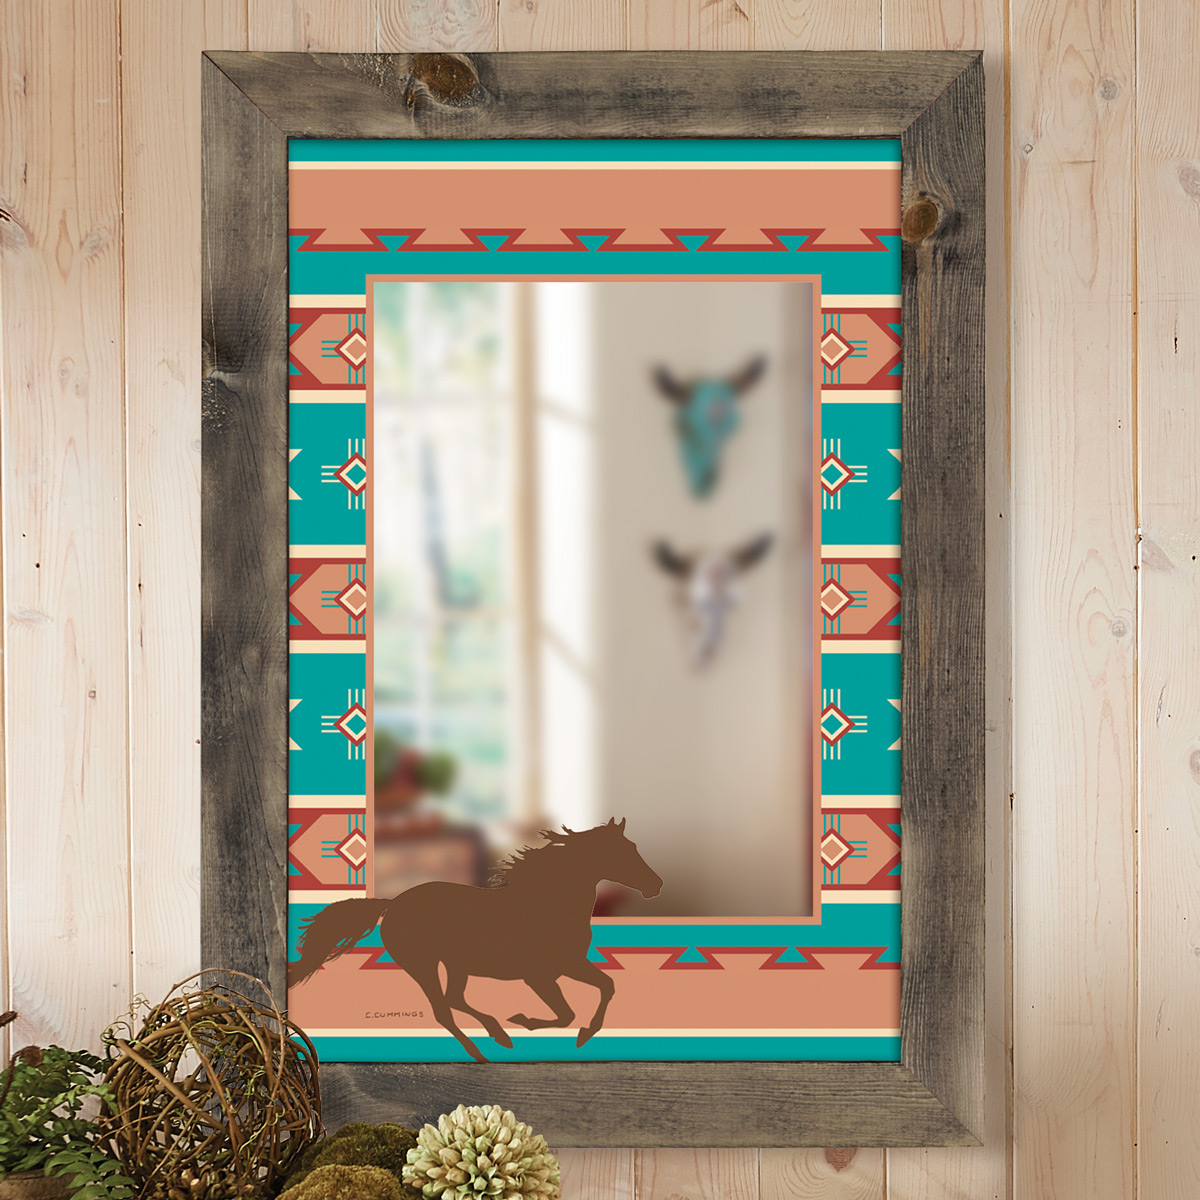 Adobe Canyon Framed Wall Mirror